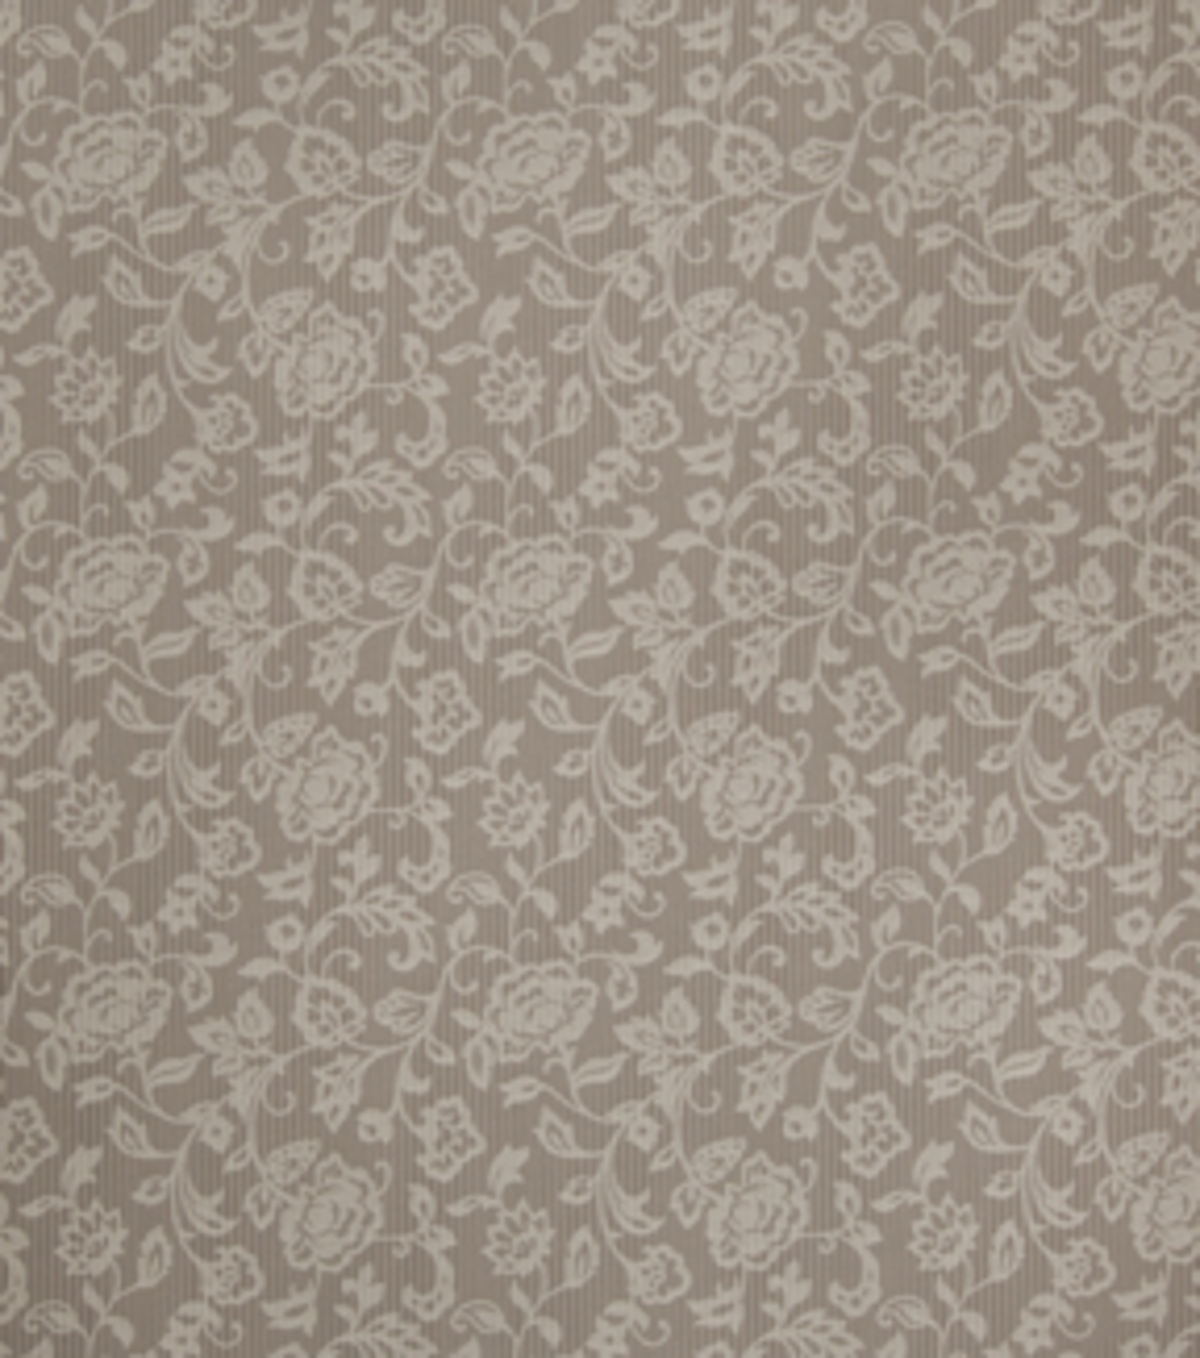 Home Decor 8\u0022x8\u0022 Fabric Swatch-Eaton Square Clorinda Frappuccino